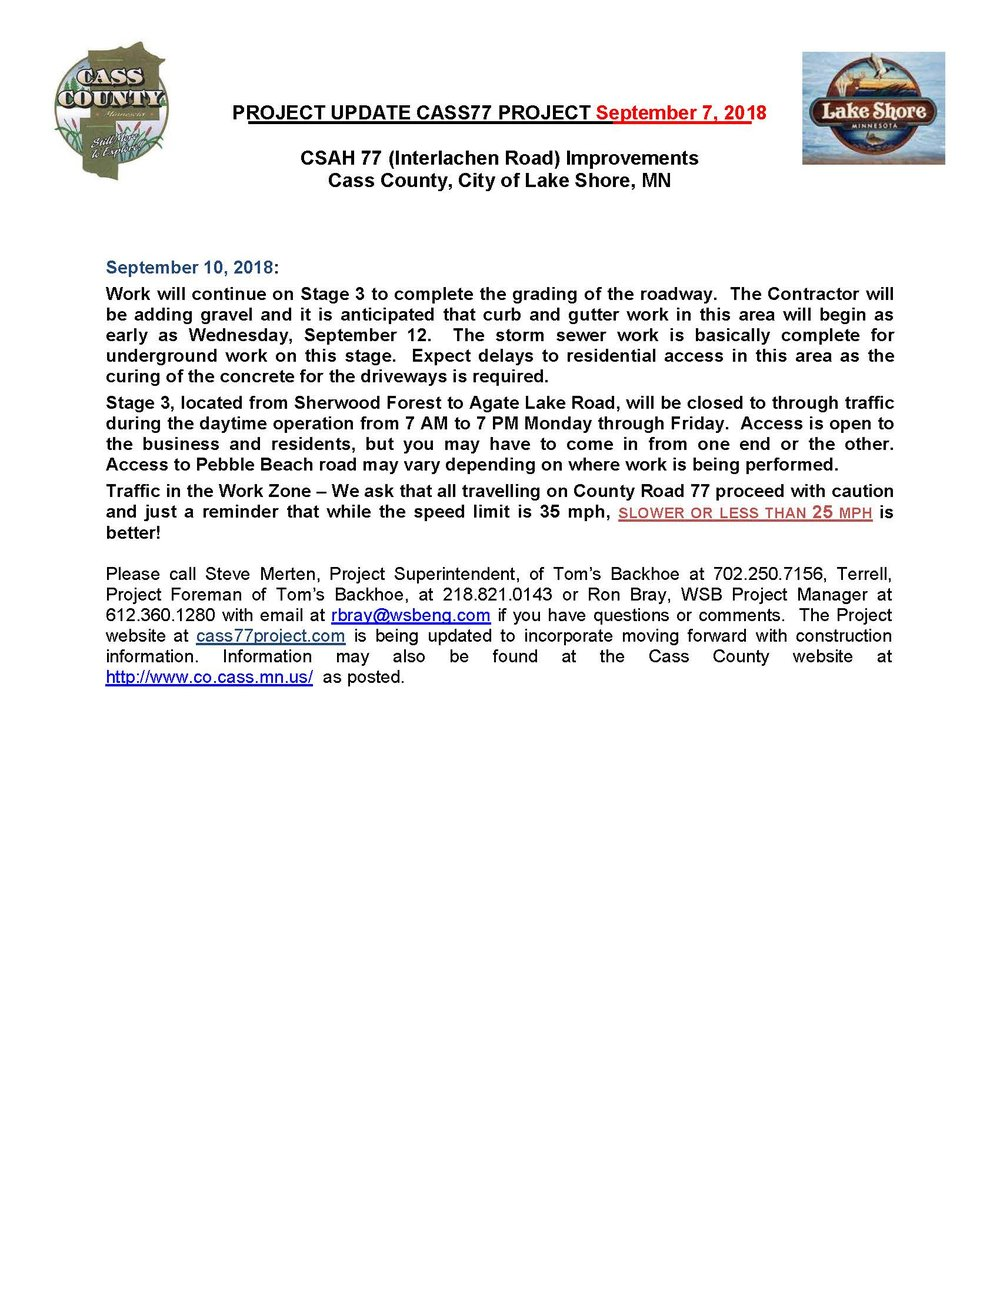 Cass County CSAH 77 Project update September 7th 2018.jpg